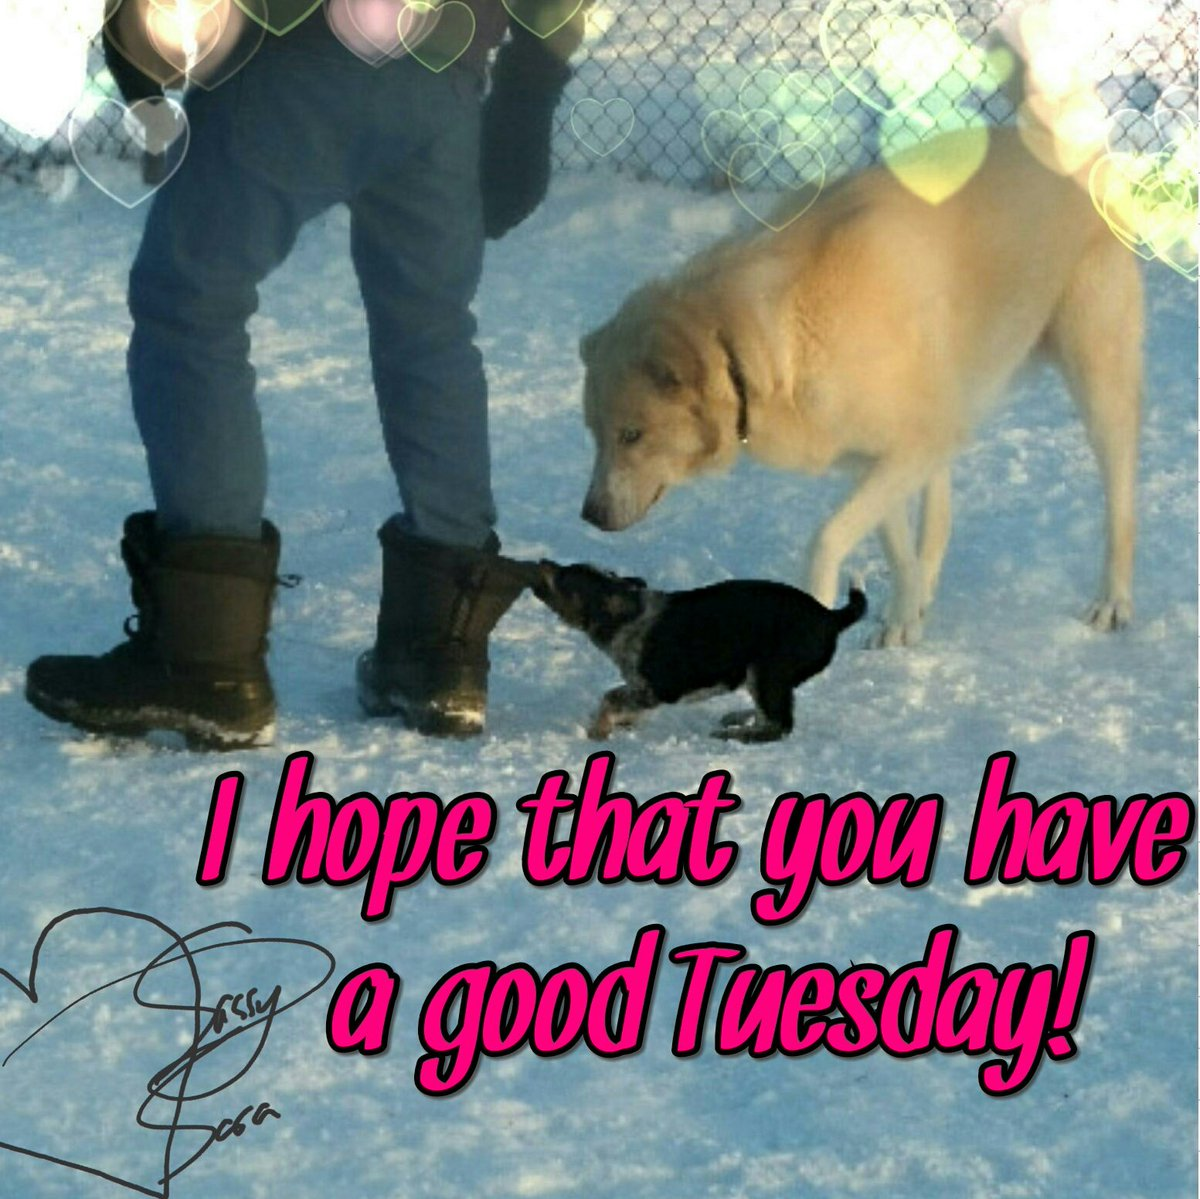 Puppy friend's forever!❤💗#tuesday #tuesdays #tuesdayinspiration #tuesdaytransformation #tuesdayvibes #tacotuesday #friends #bestfriendshit #bestfriendstatus #FriendshipGoals #puppies #puppiesoftwitter #dog #dogs #dogsoftwitter #adorable #adorableanimals #baby #babylove #cute